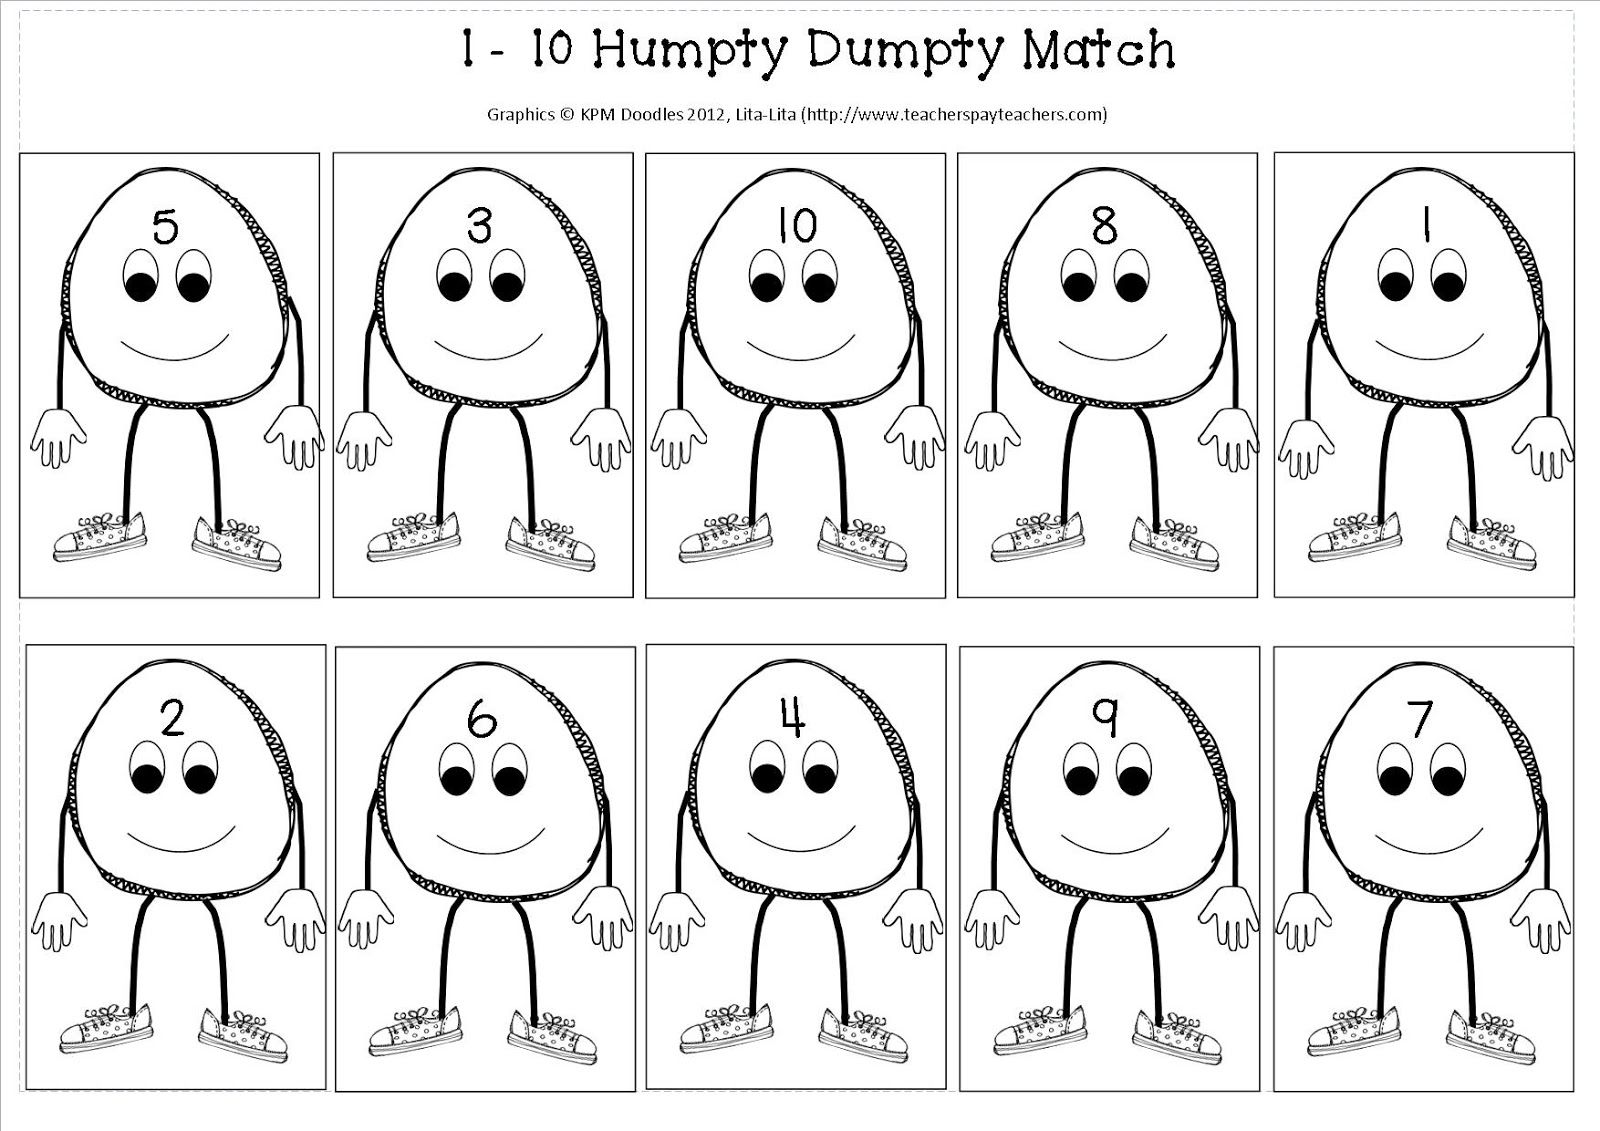 17 Best images about PRESCHOOL - Ovals on Pinterest  Activities  worksheets for teachers, free worksheets, multiplication, and printable worksheets Humpty Dumpty Worksheet 1131 x 1600